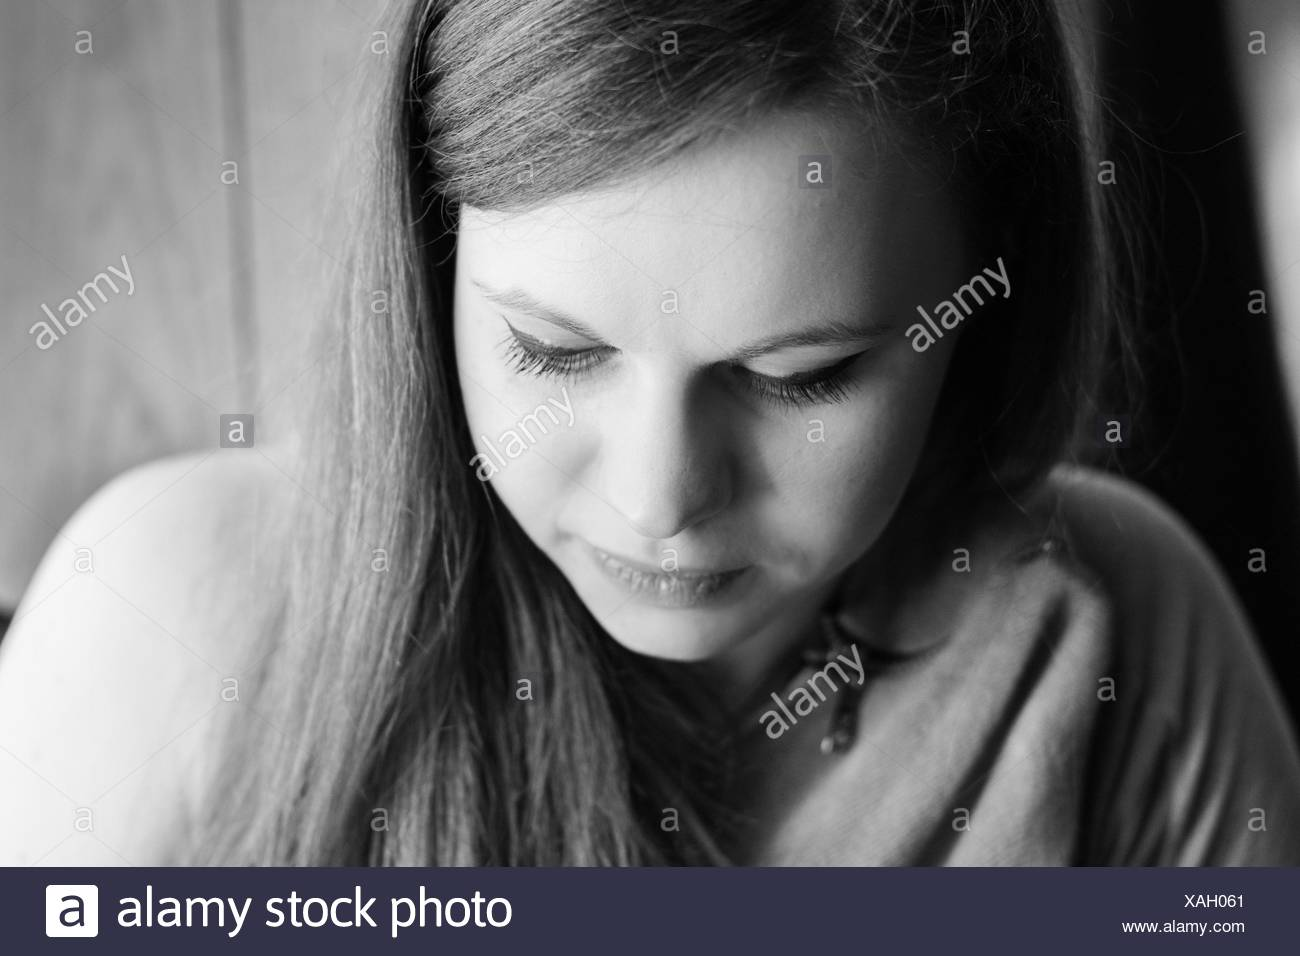 Close-Up Of Young Woman Looking Down Stock Photo